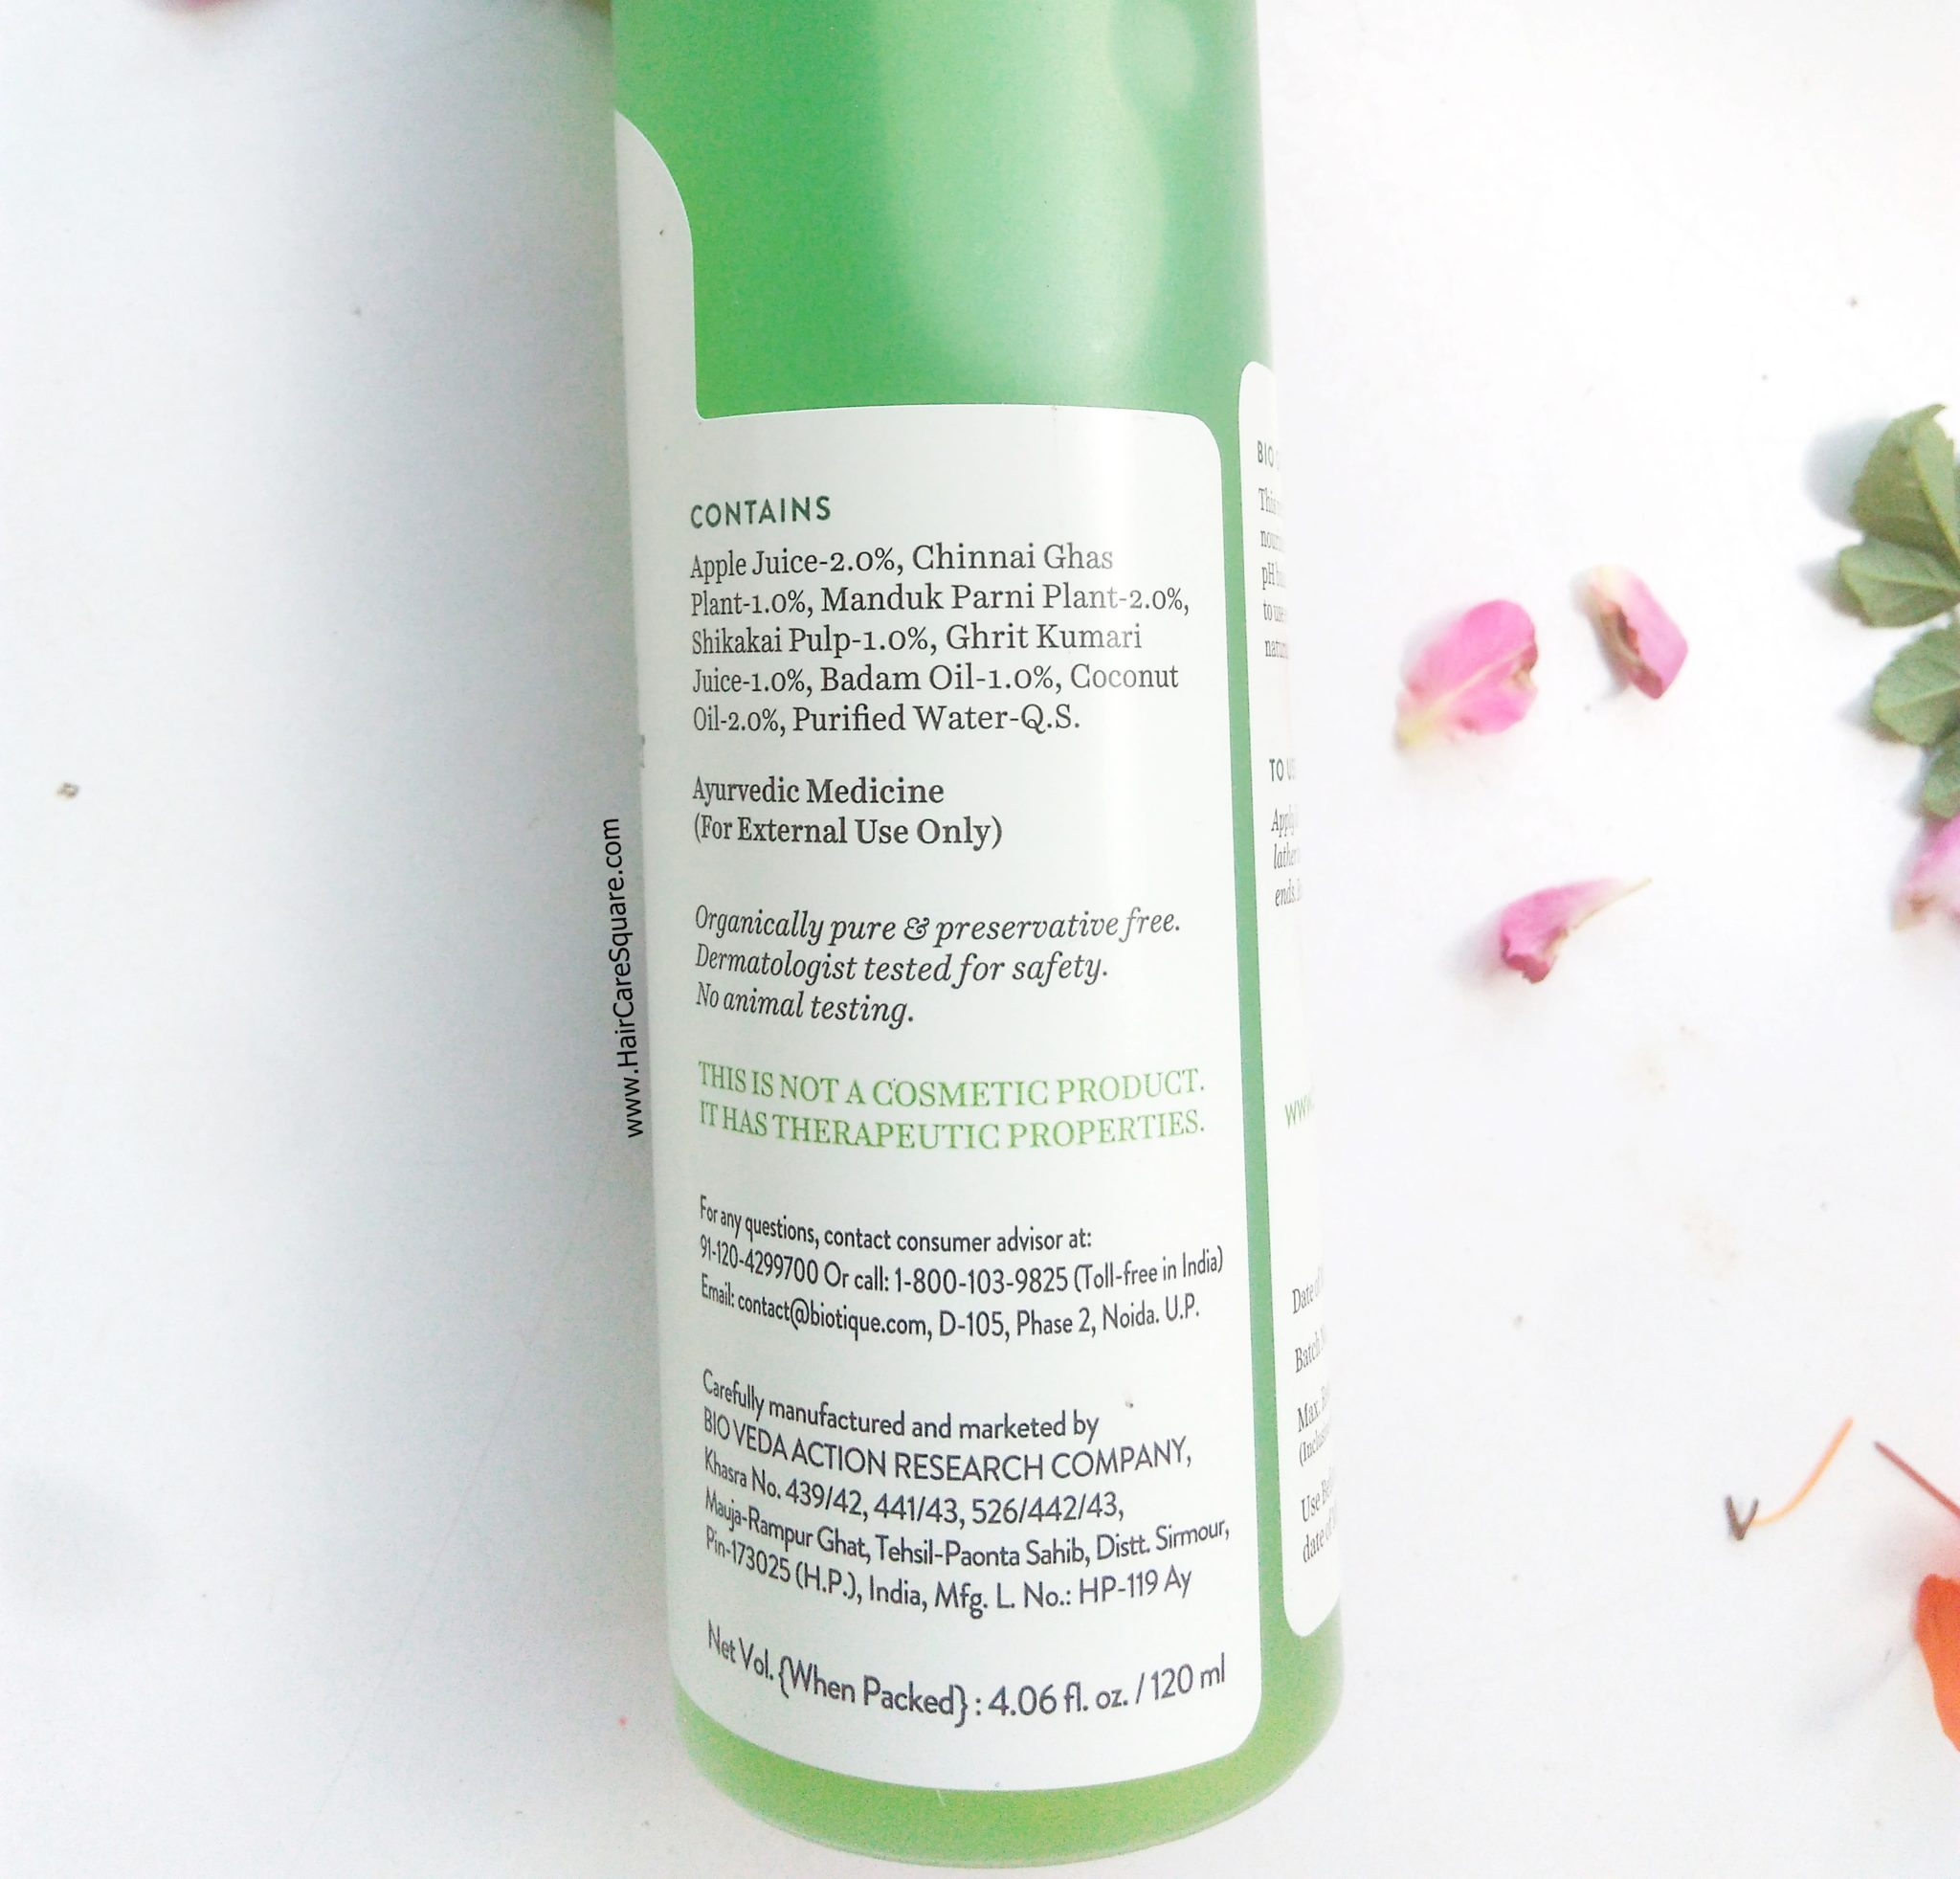 Biotique Bio Green Apple Fresh Daily Purifying Shampoo Conditioner